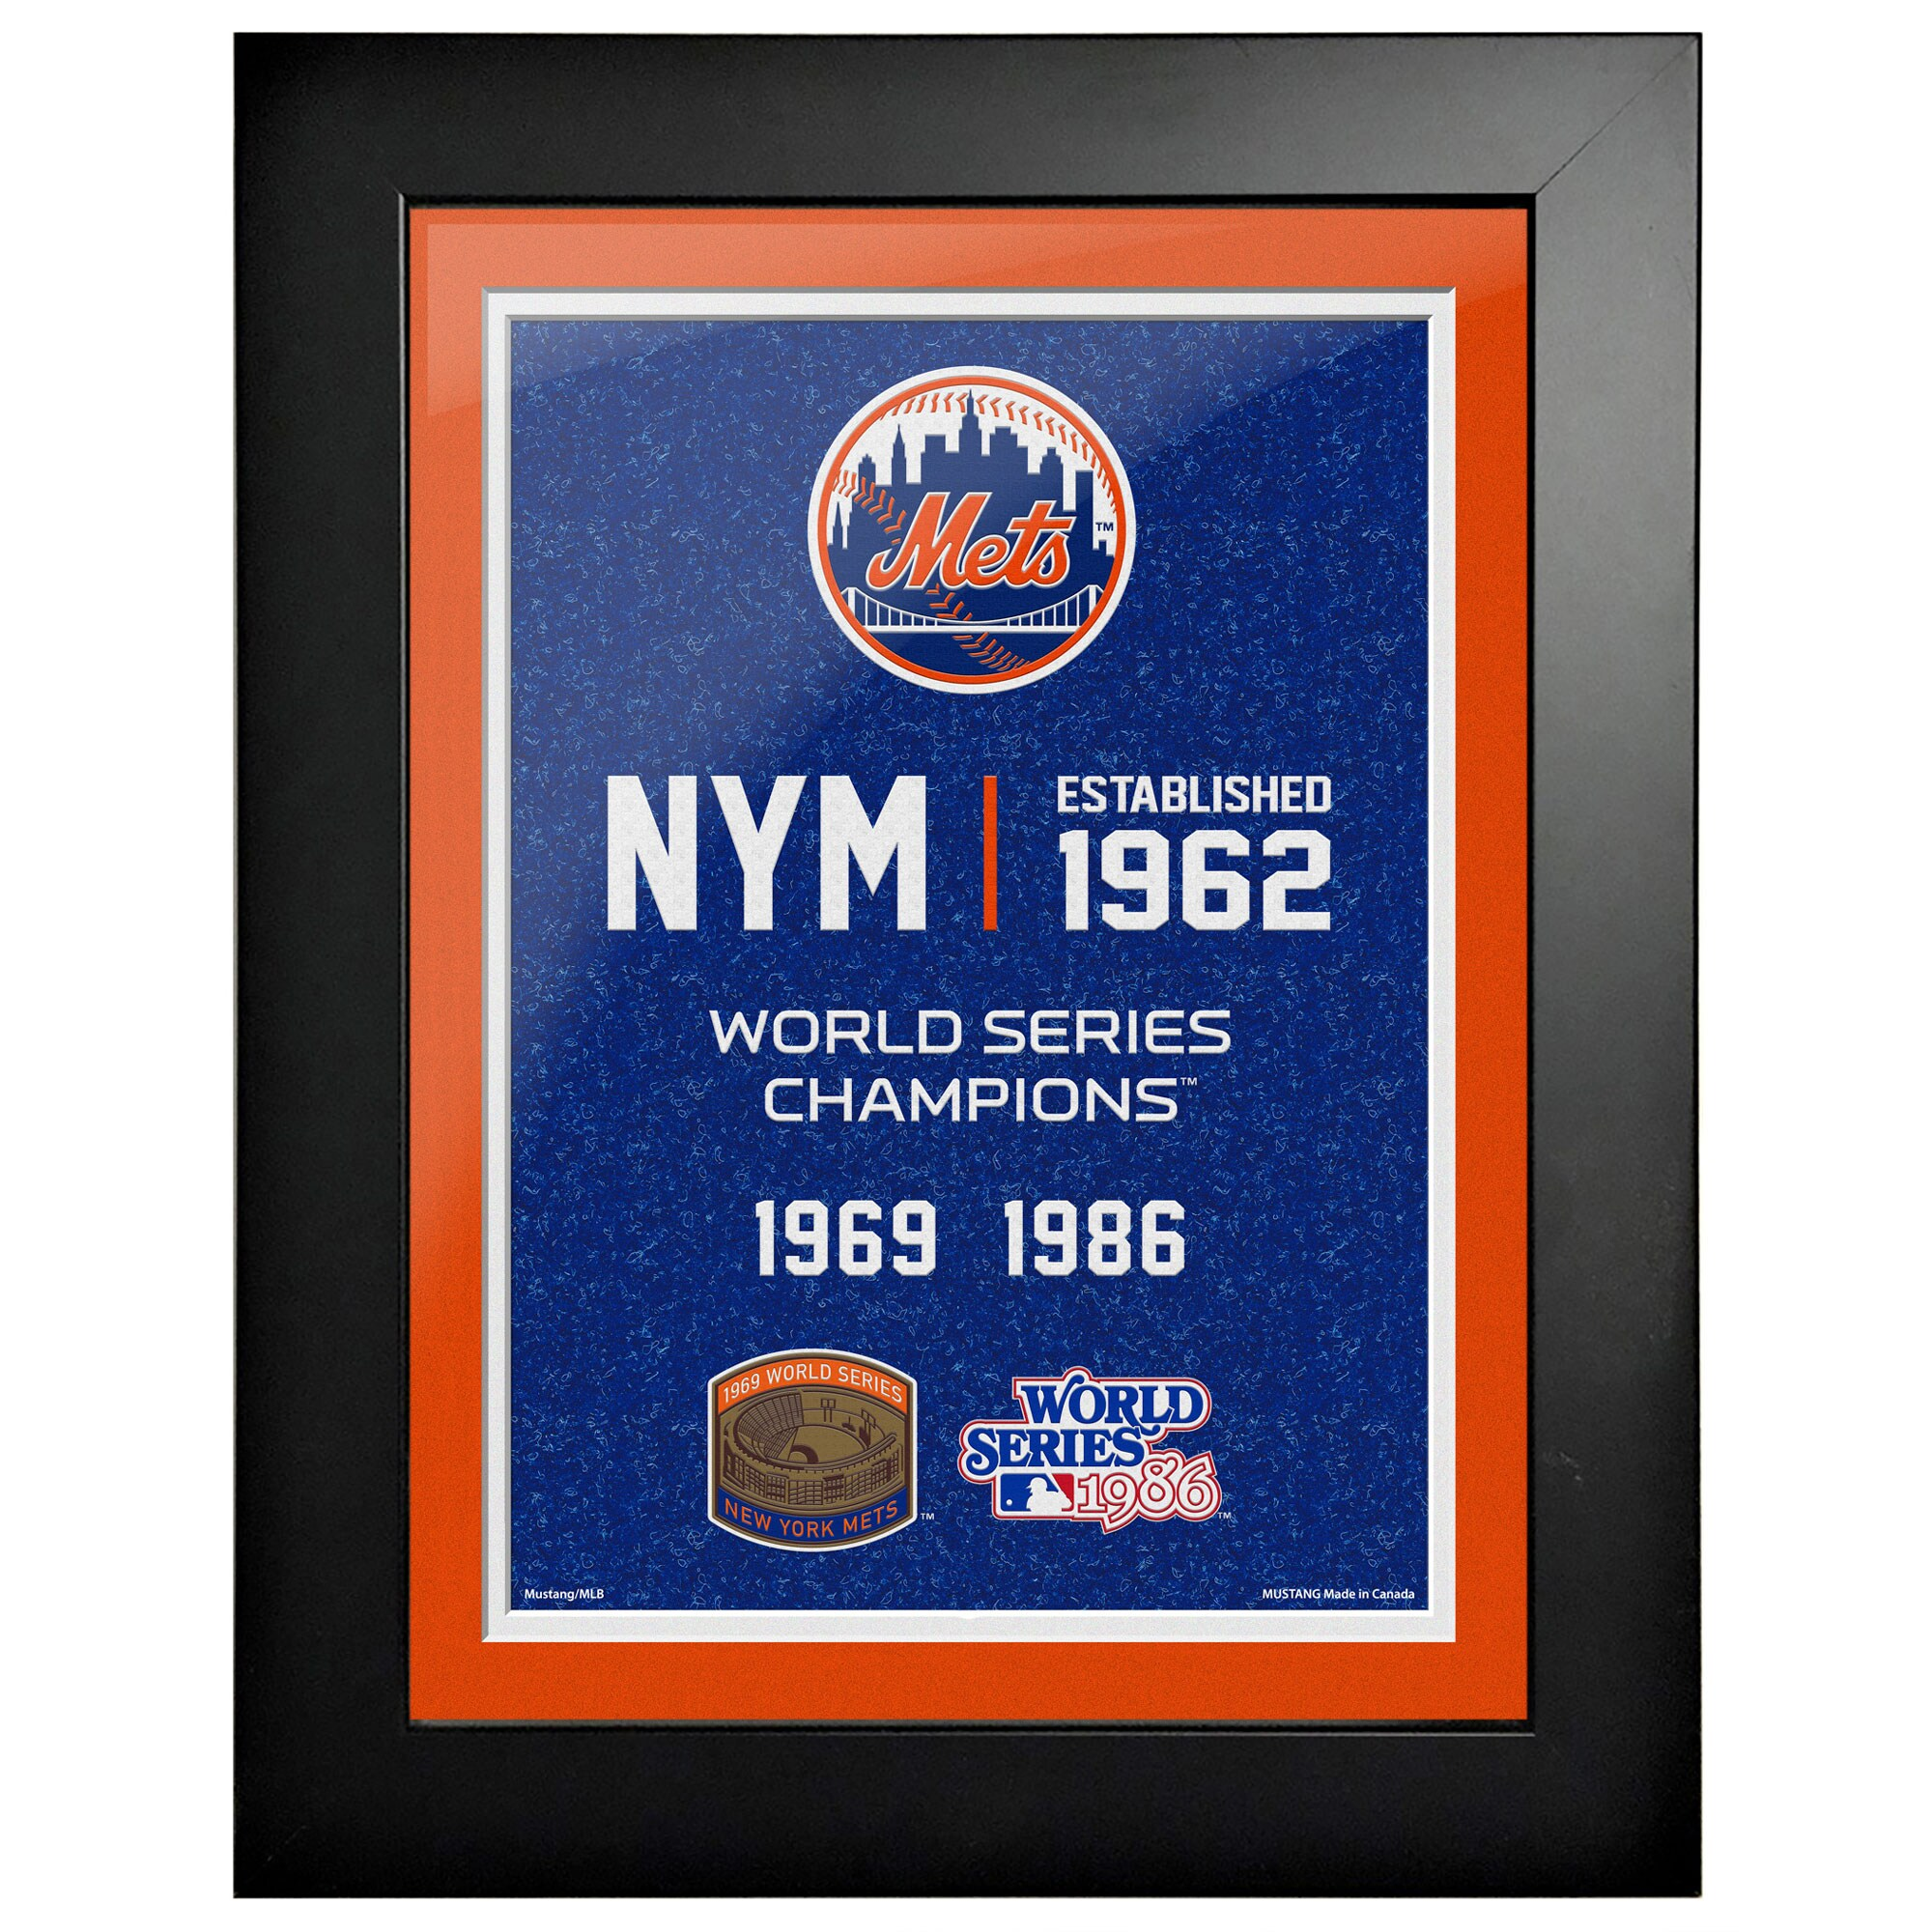 New York Mets 2-Time World Series Champions 18'' x 14'' Empire Framed Art